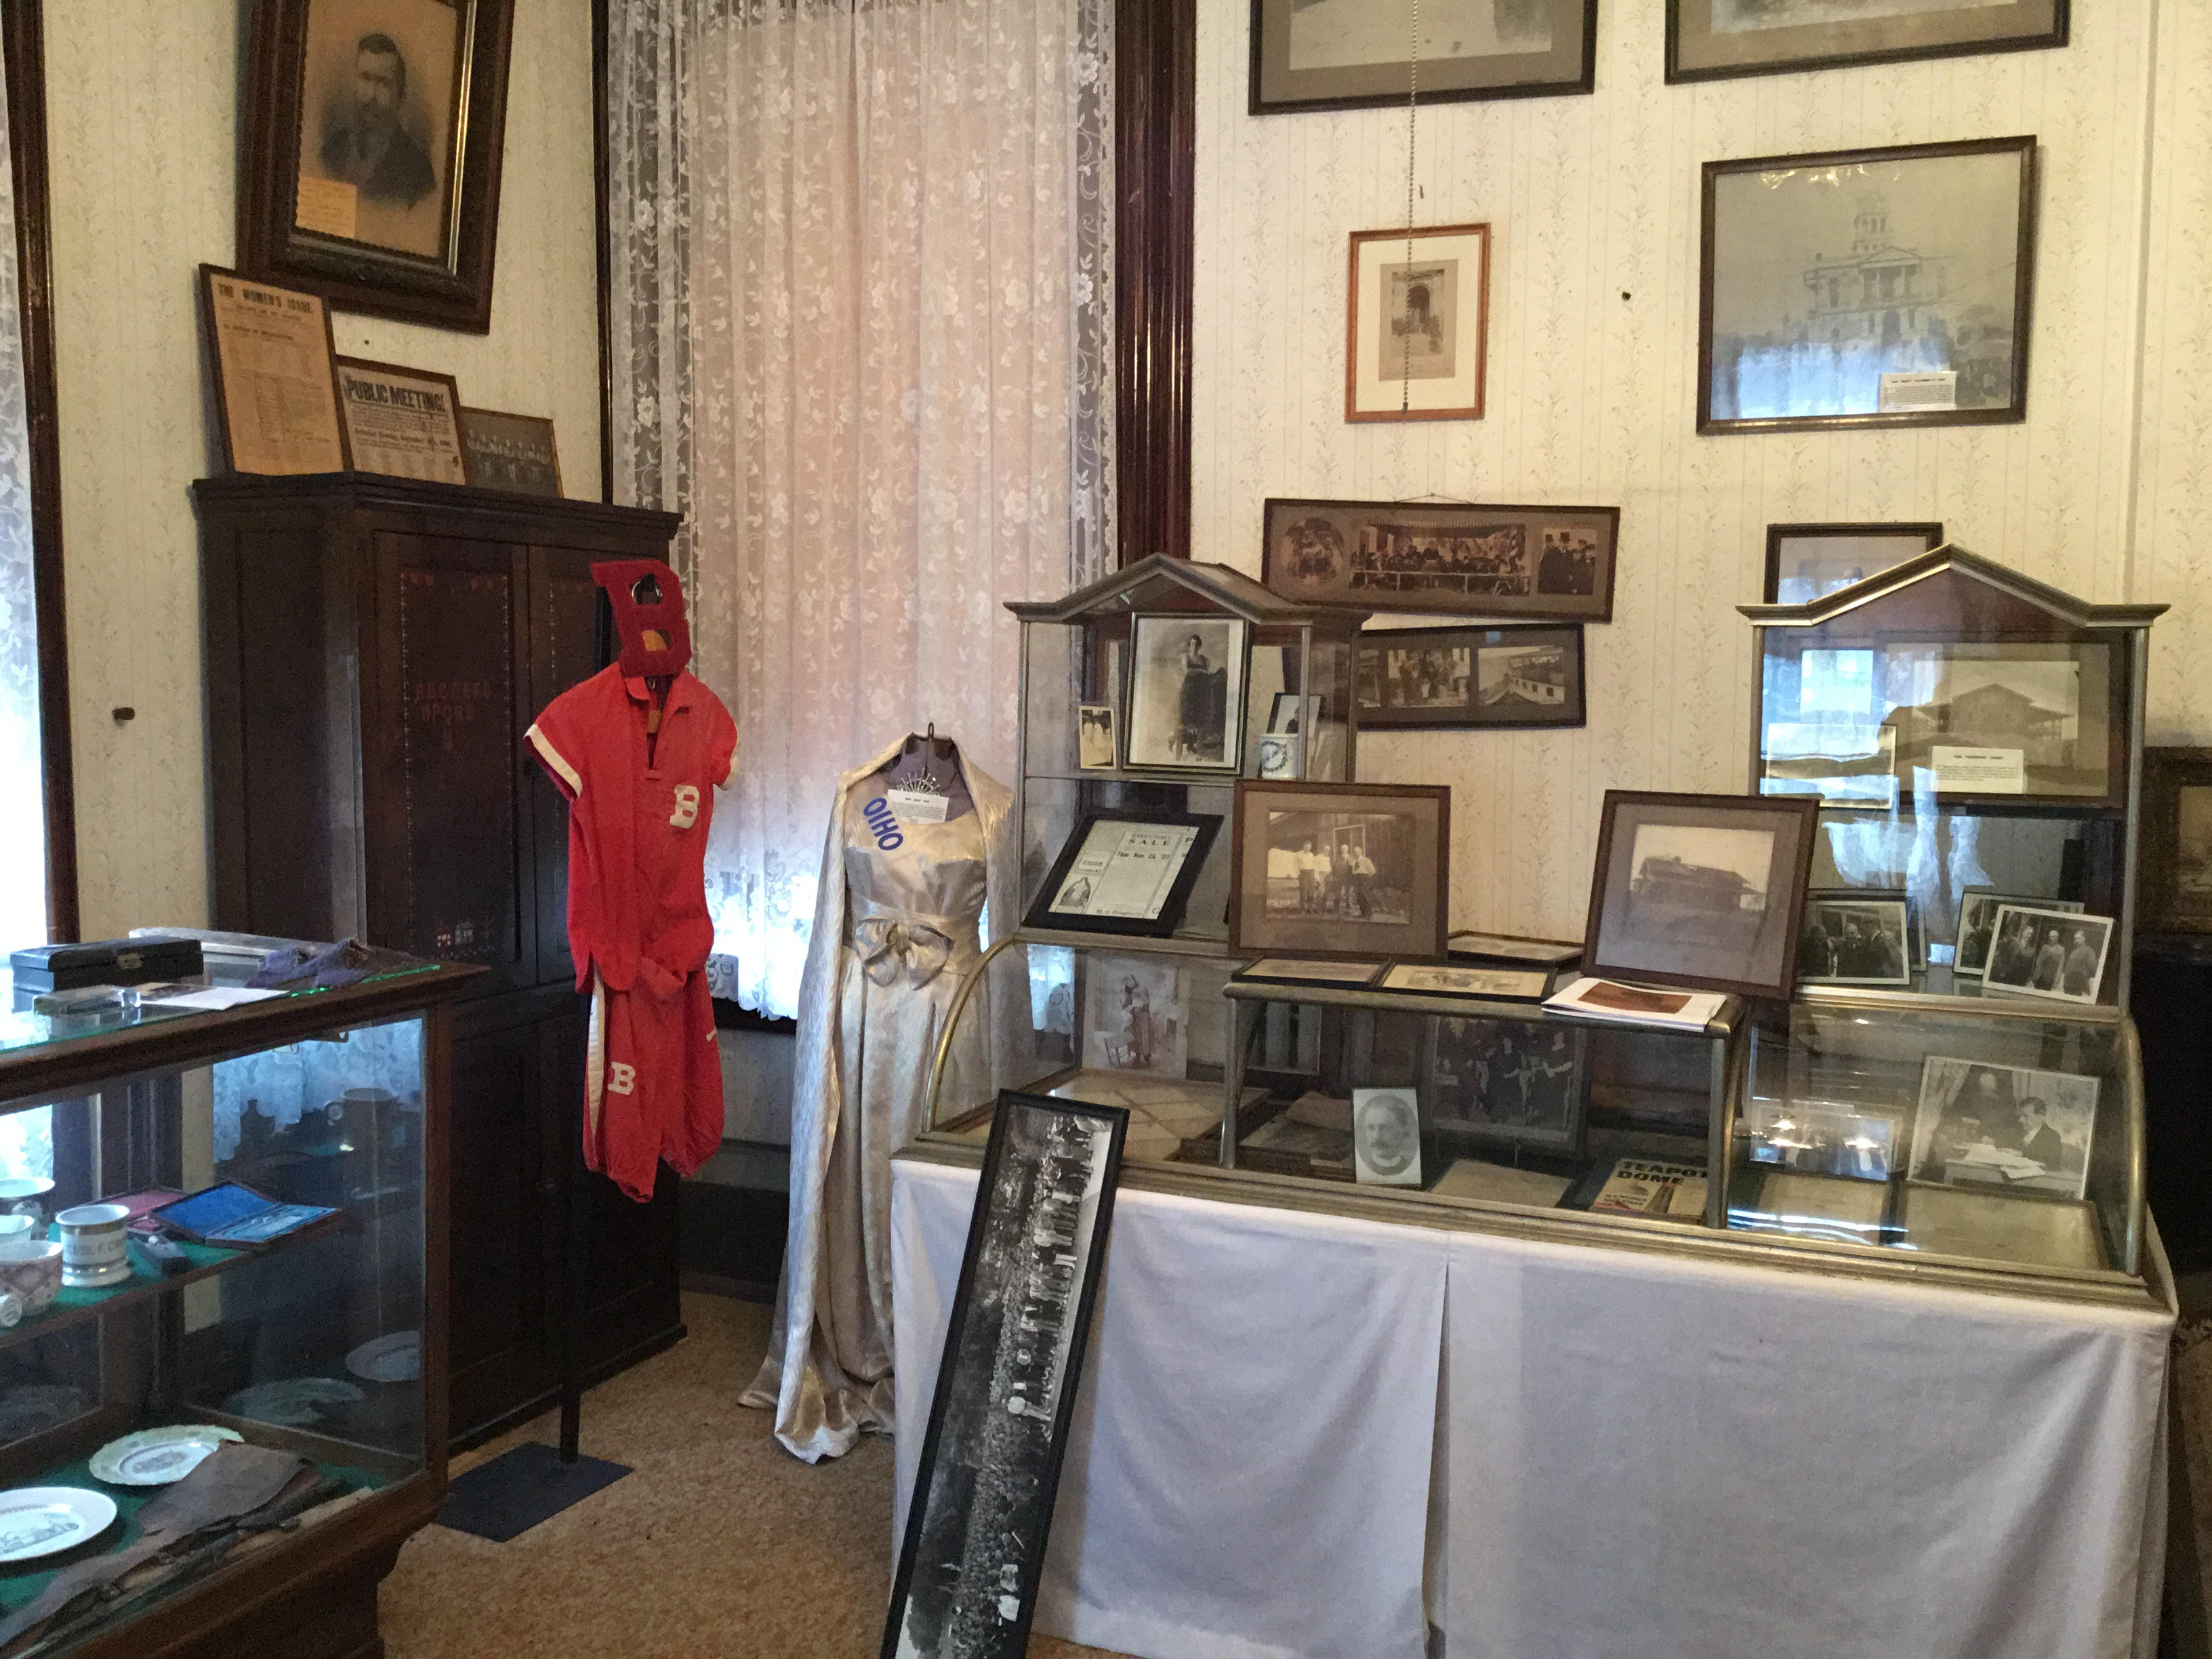 The museum contains thousands of items pertinent to the history of Fayette County. Image courtesy of the Fayette County Historical Society.